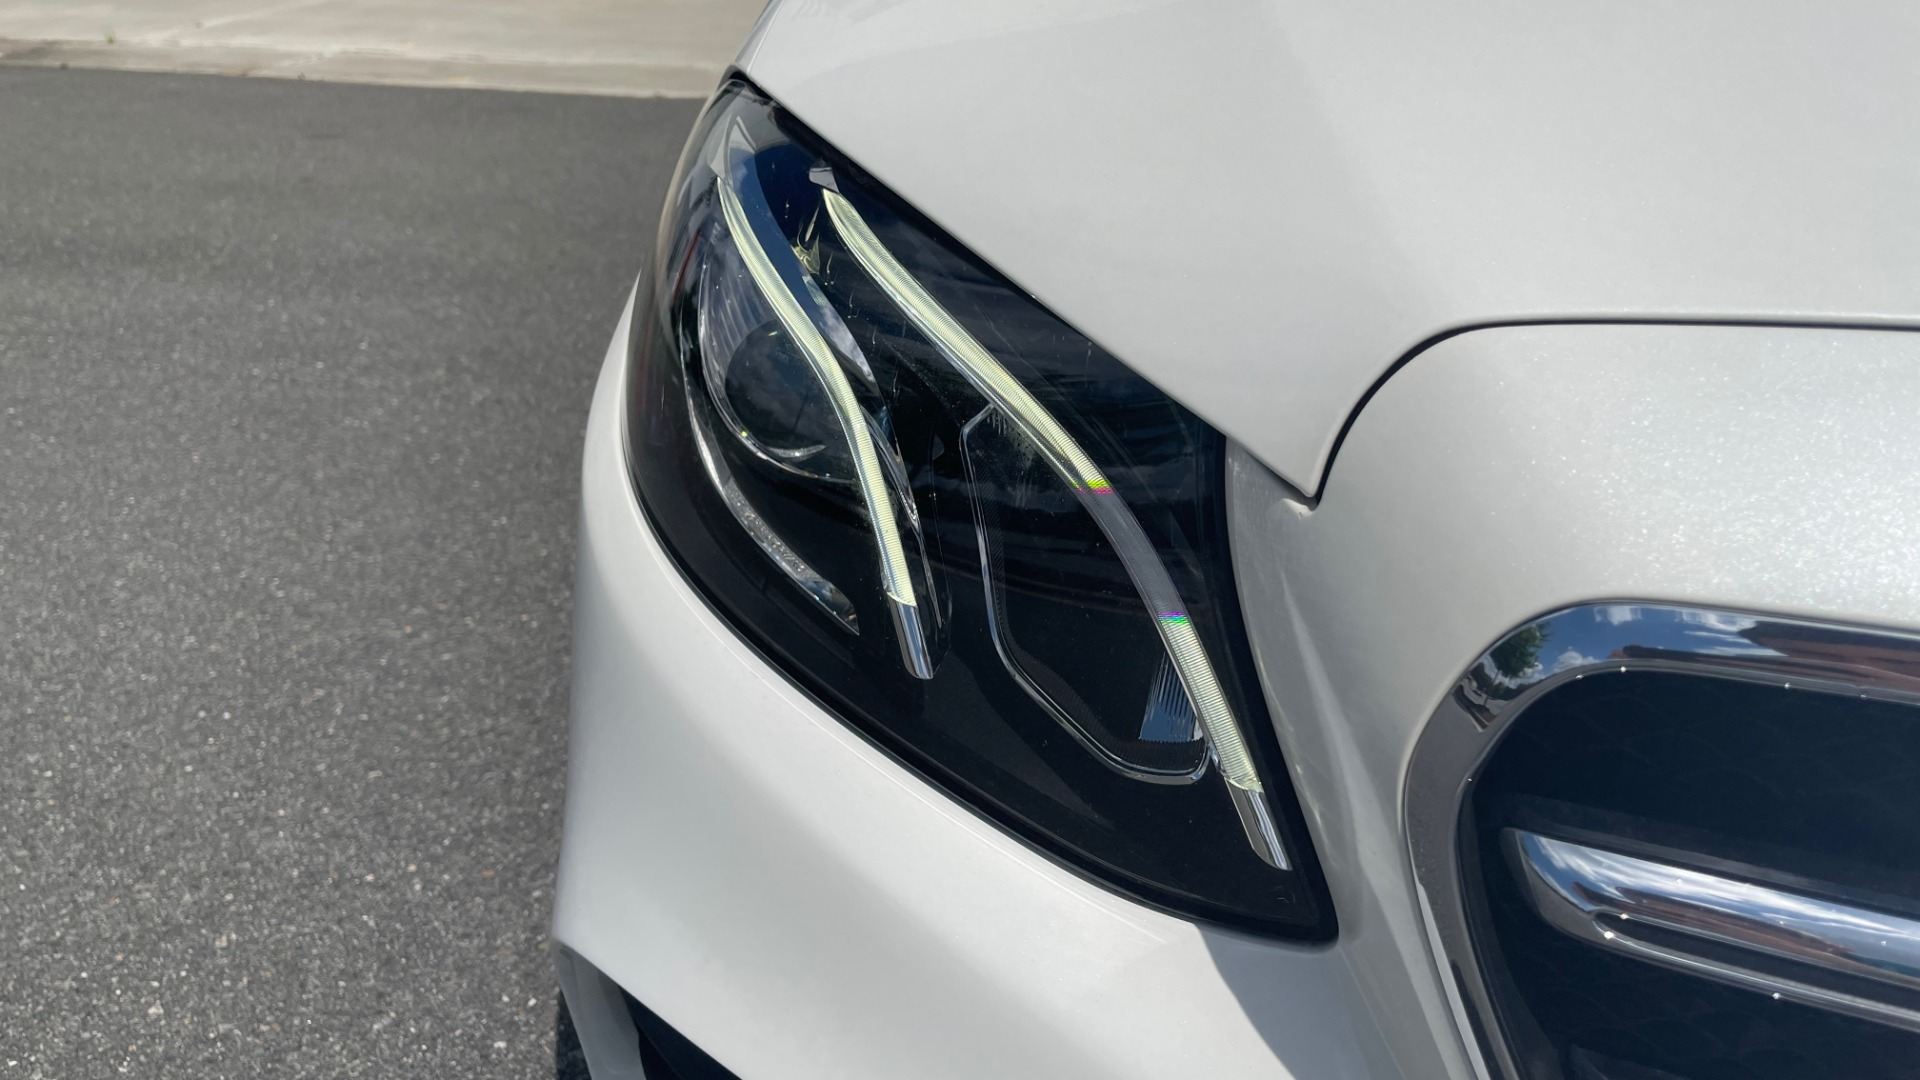 Used 2018 Mercedes-Benz E-CLASS E 300 PREMIUM / NIGHT PKG / PANO-ROOF / BURMESTER / REARVIEW for sale $42,399 at Formula Imports in Charlotte NC 28227 19